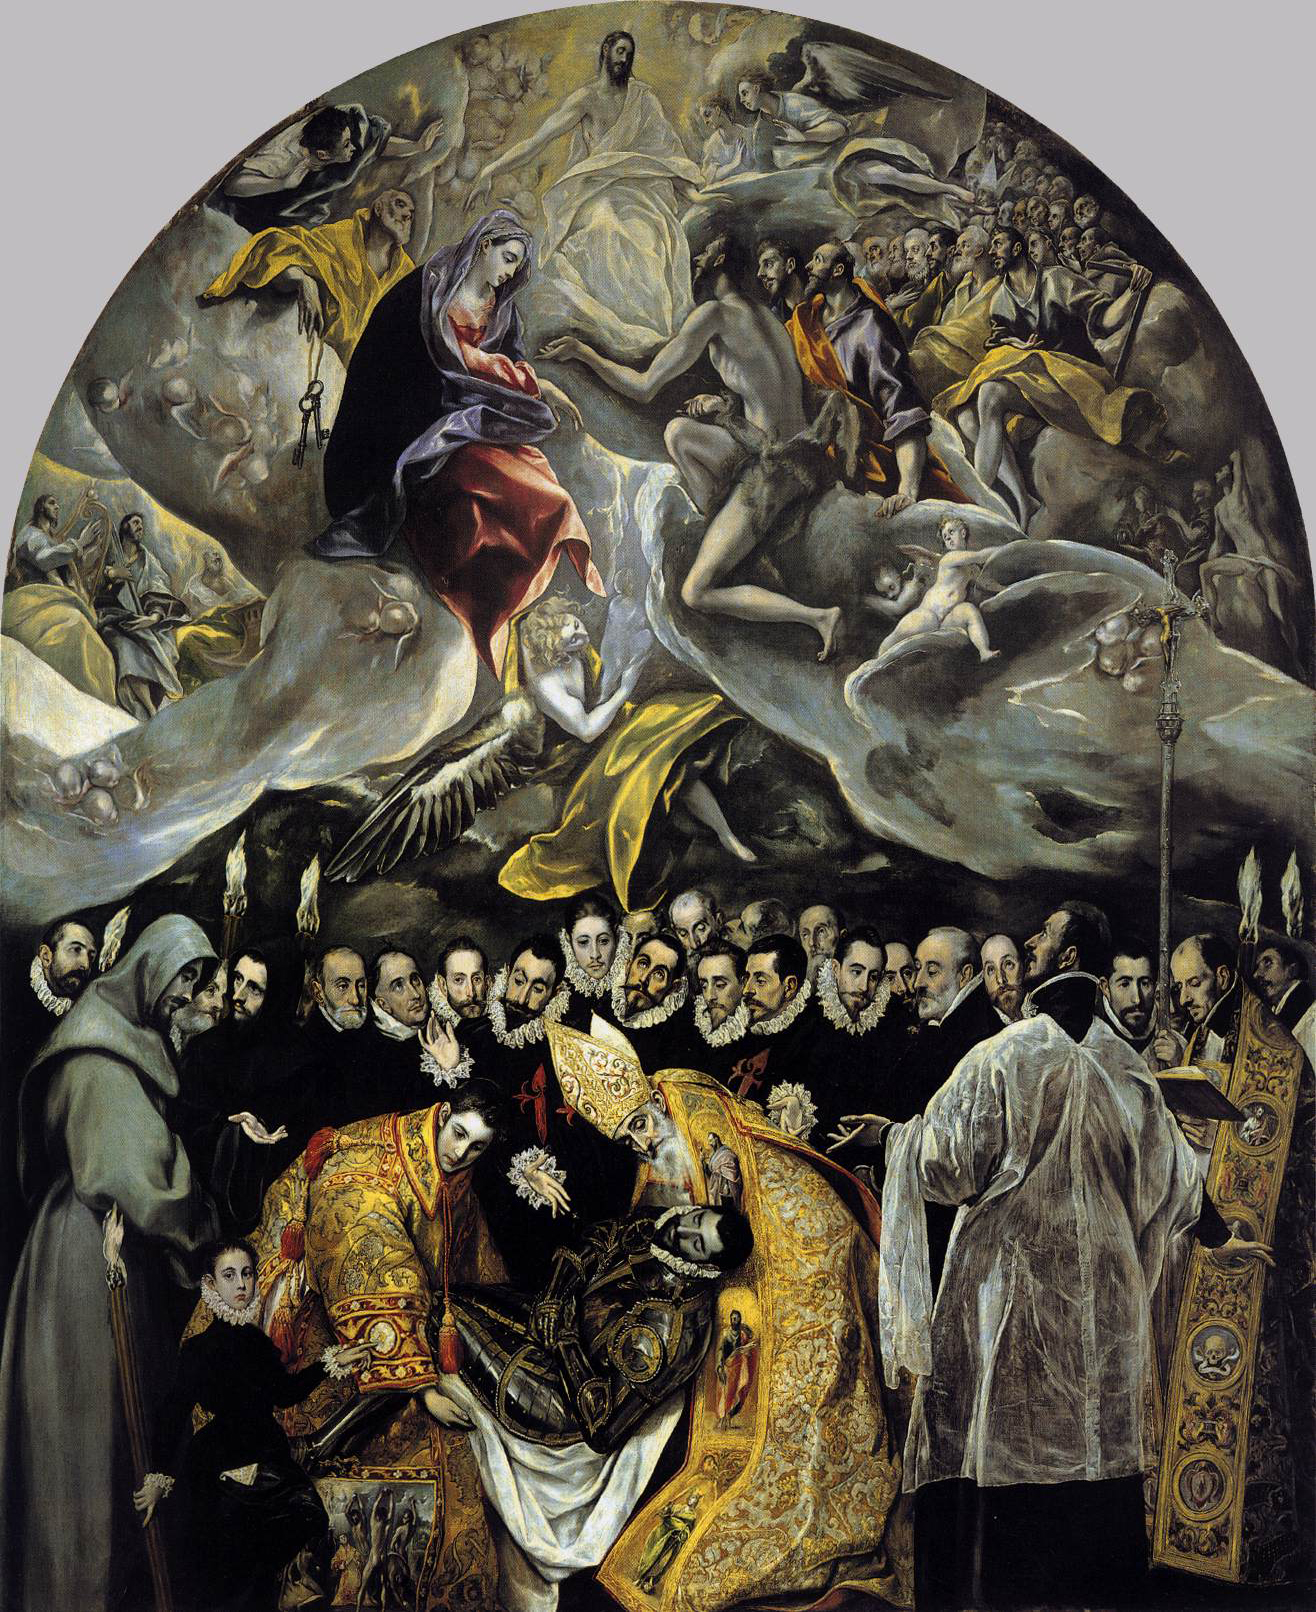 El Greco Burial of Count Orgaz